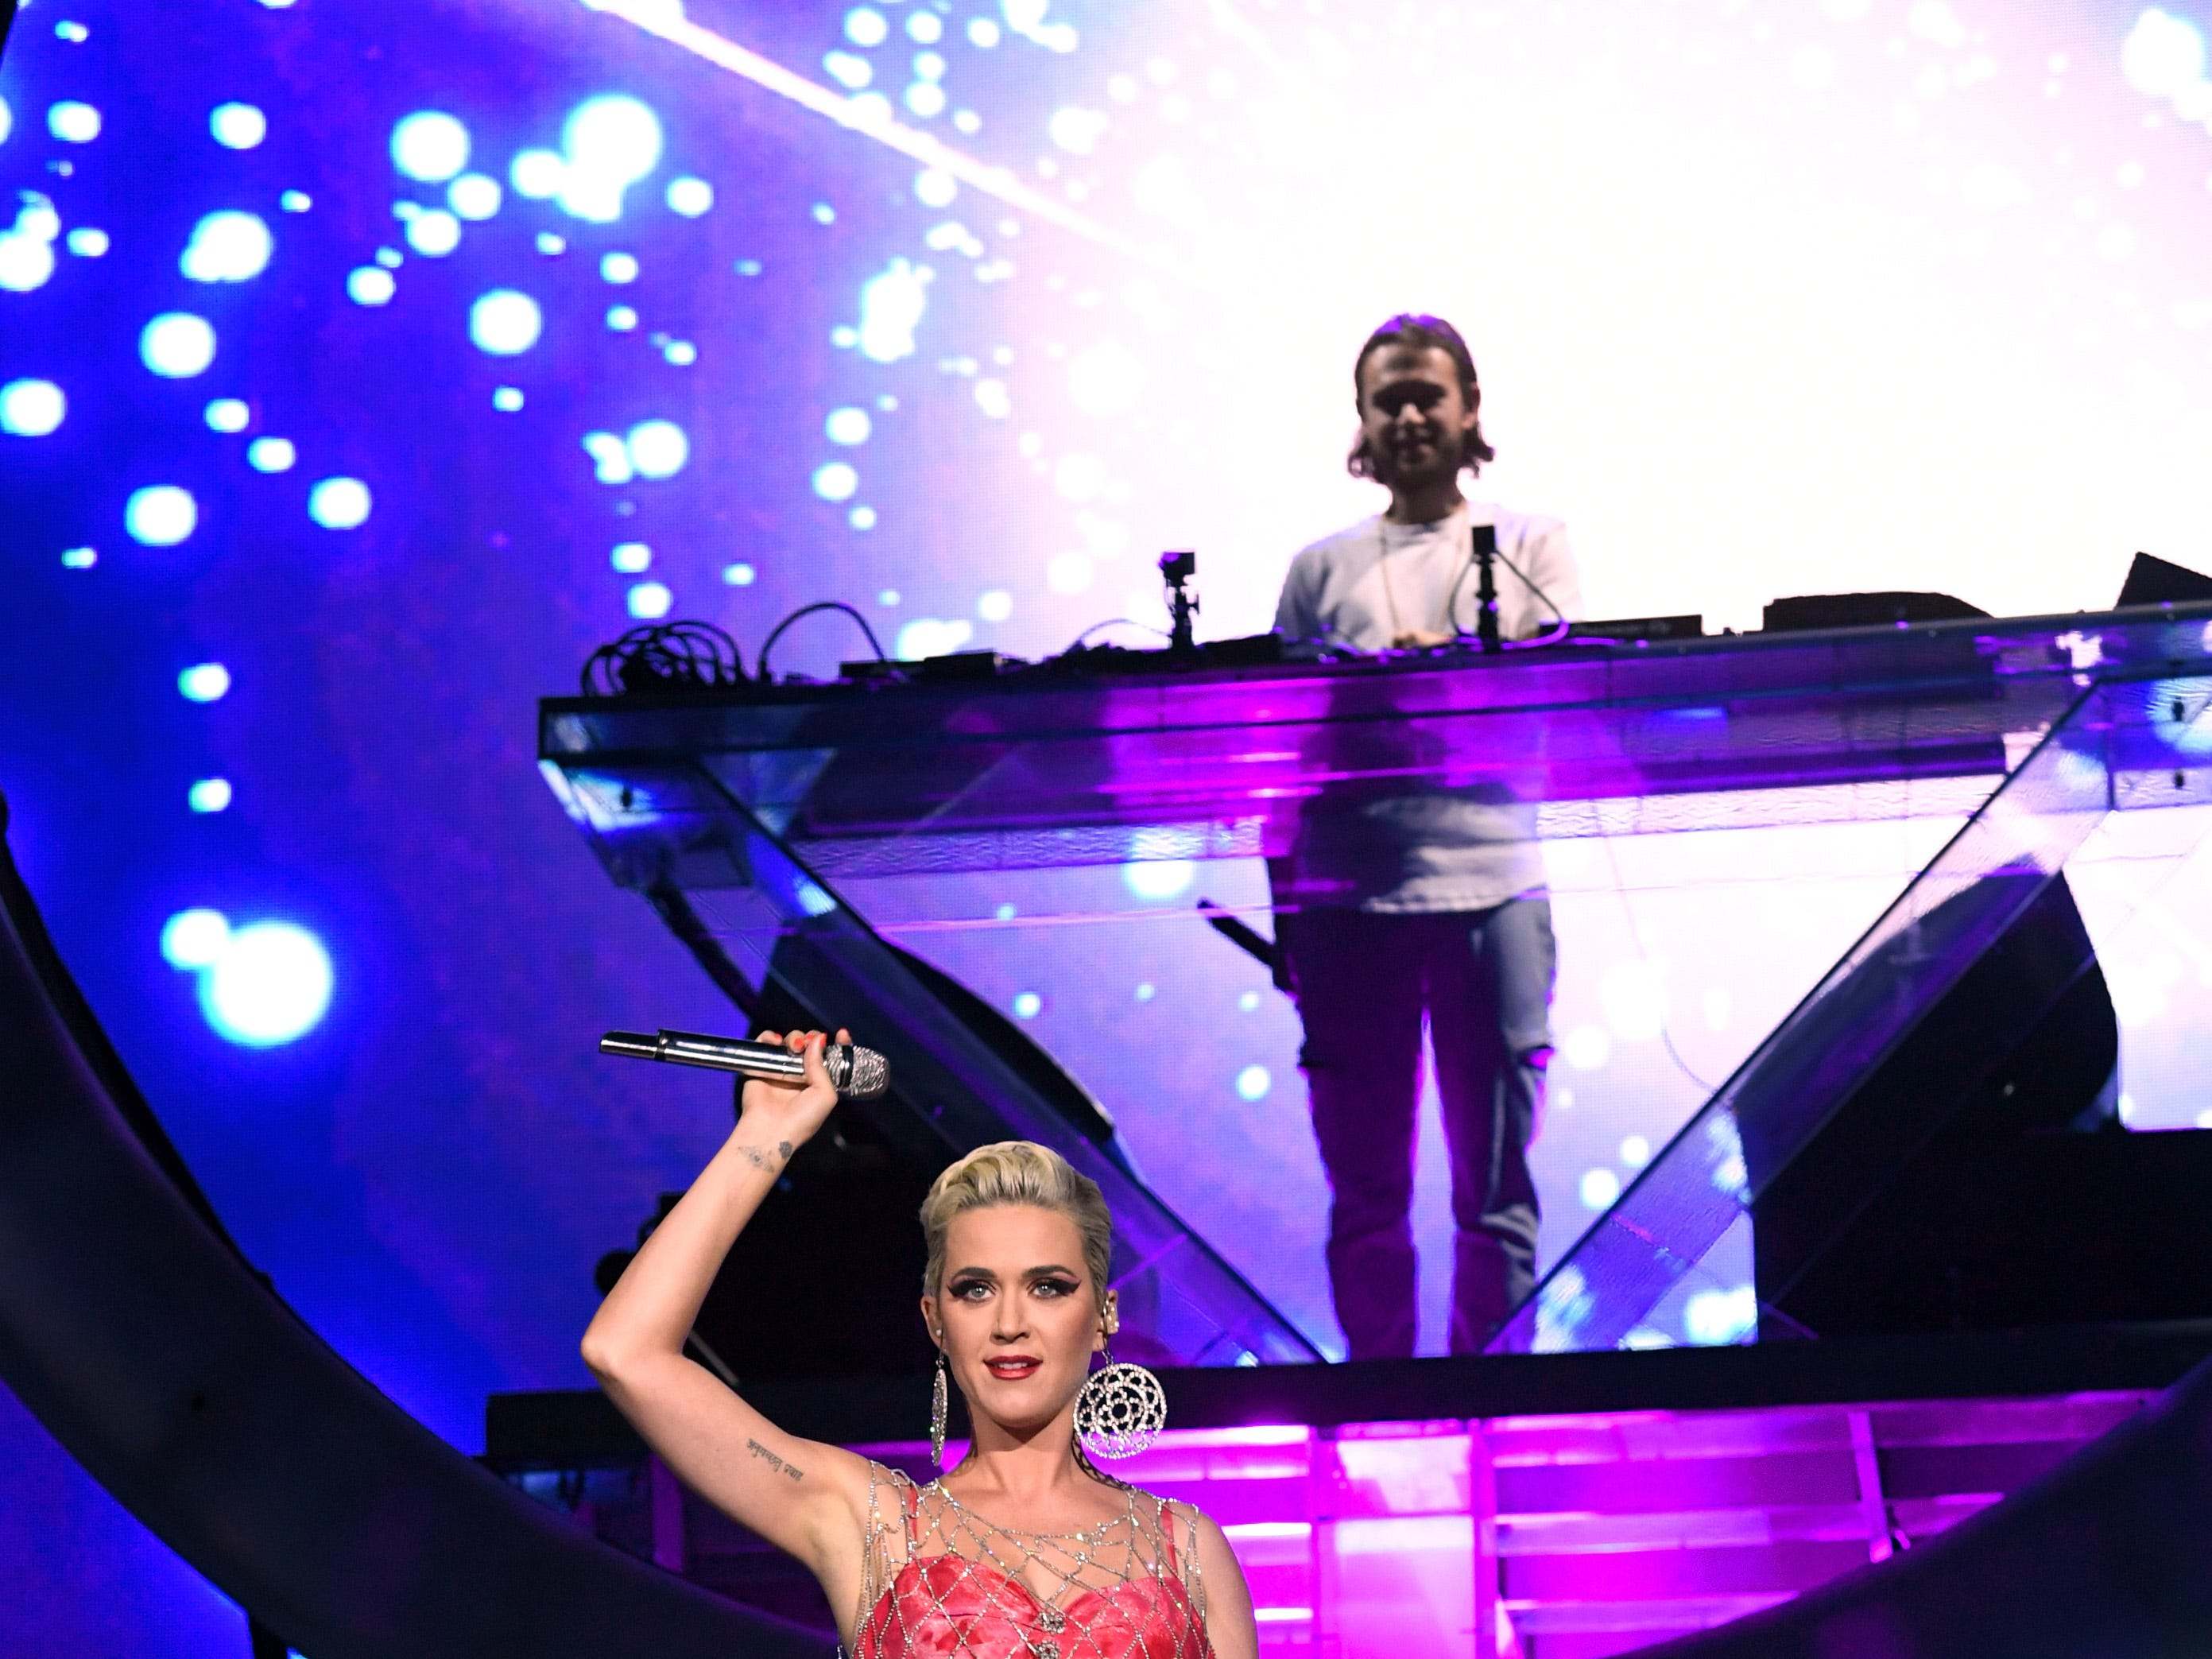 INDIO, CA - APRIL 14:  Katy Perry performs onstage with Zedd at Coachella Stage during the 2019 Coachella Valley Music And Arts Festival on April 14, 2019 in Indio, California.  (Photo by Kevin Winter/Getty Images for Coachella) ORG XMIT: 775322963 ORIG FILE ID: 1137222011